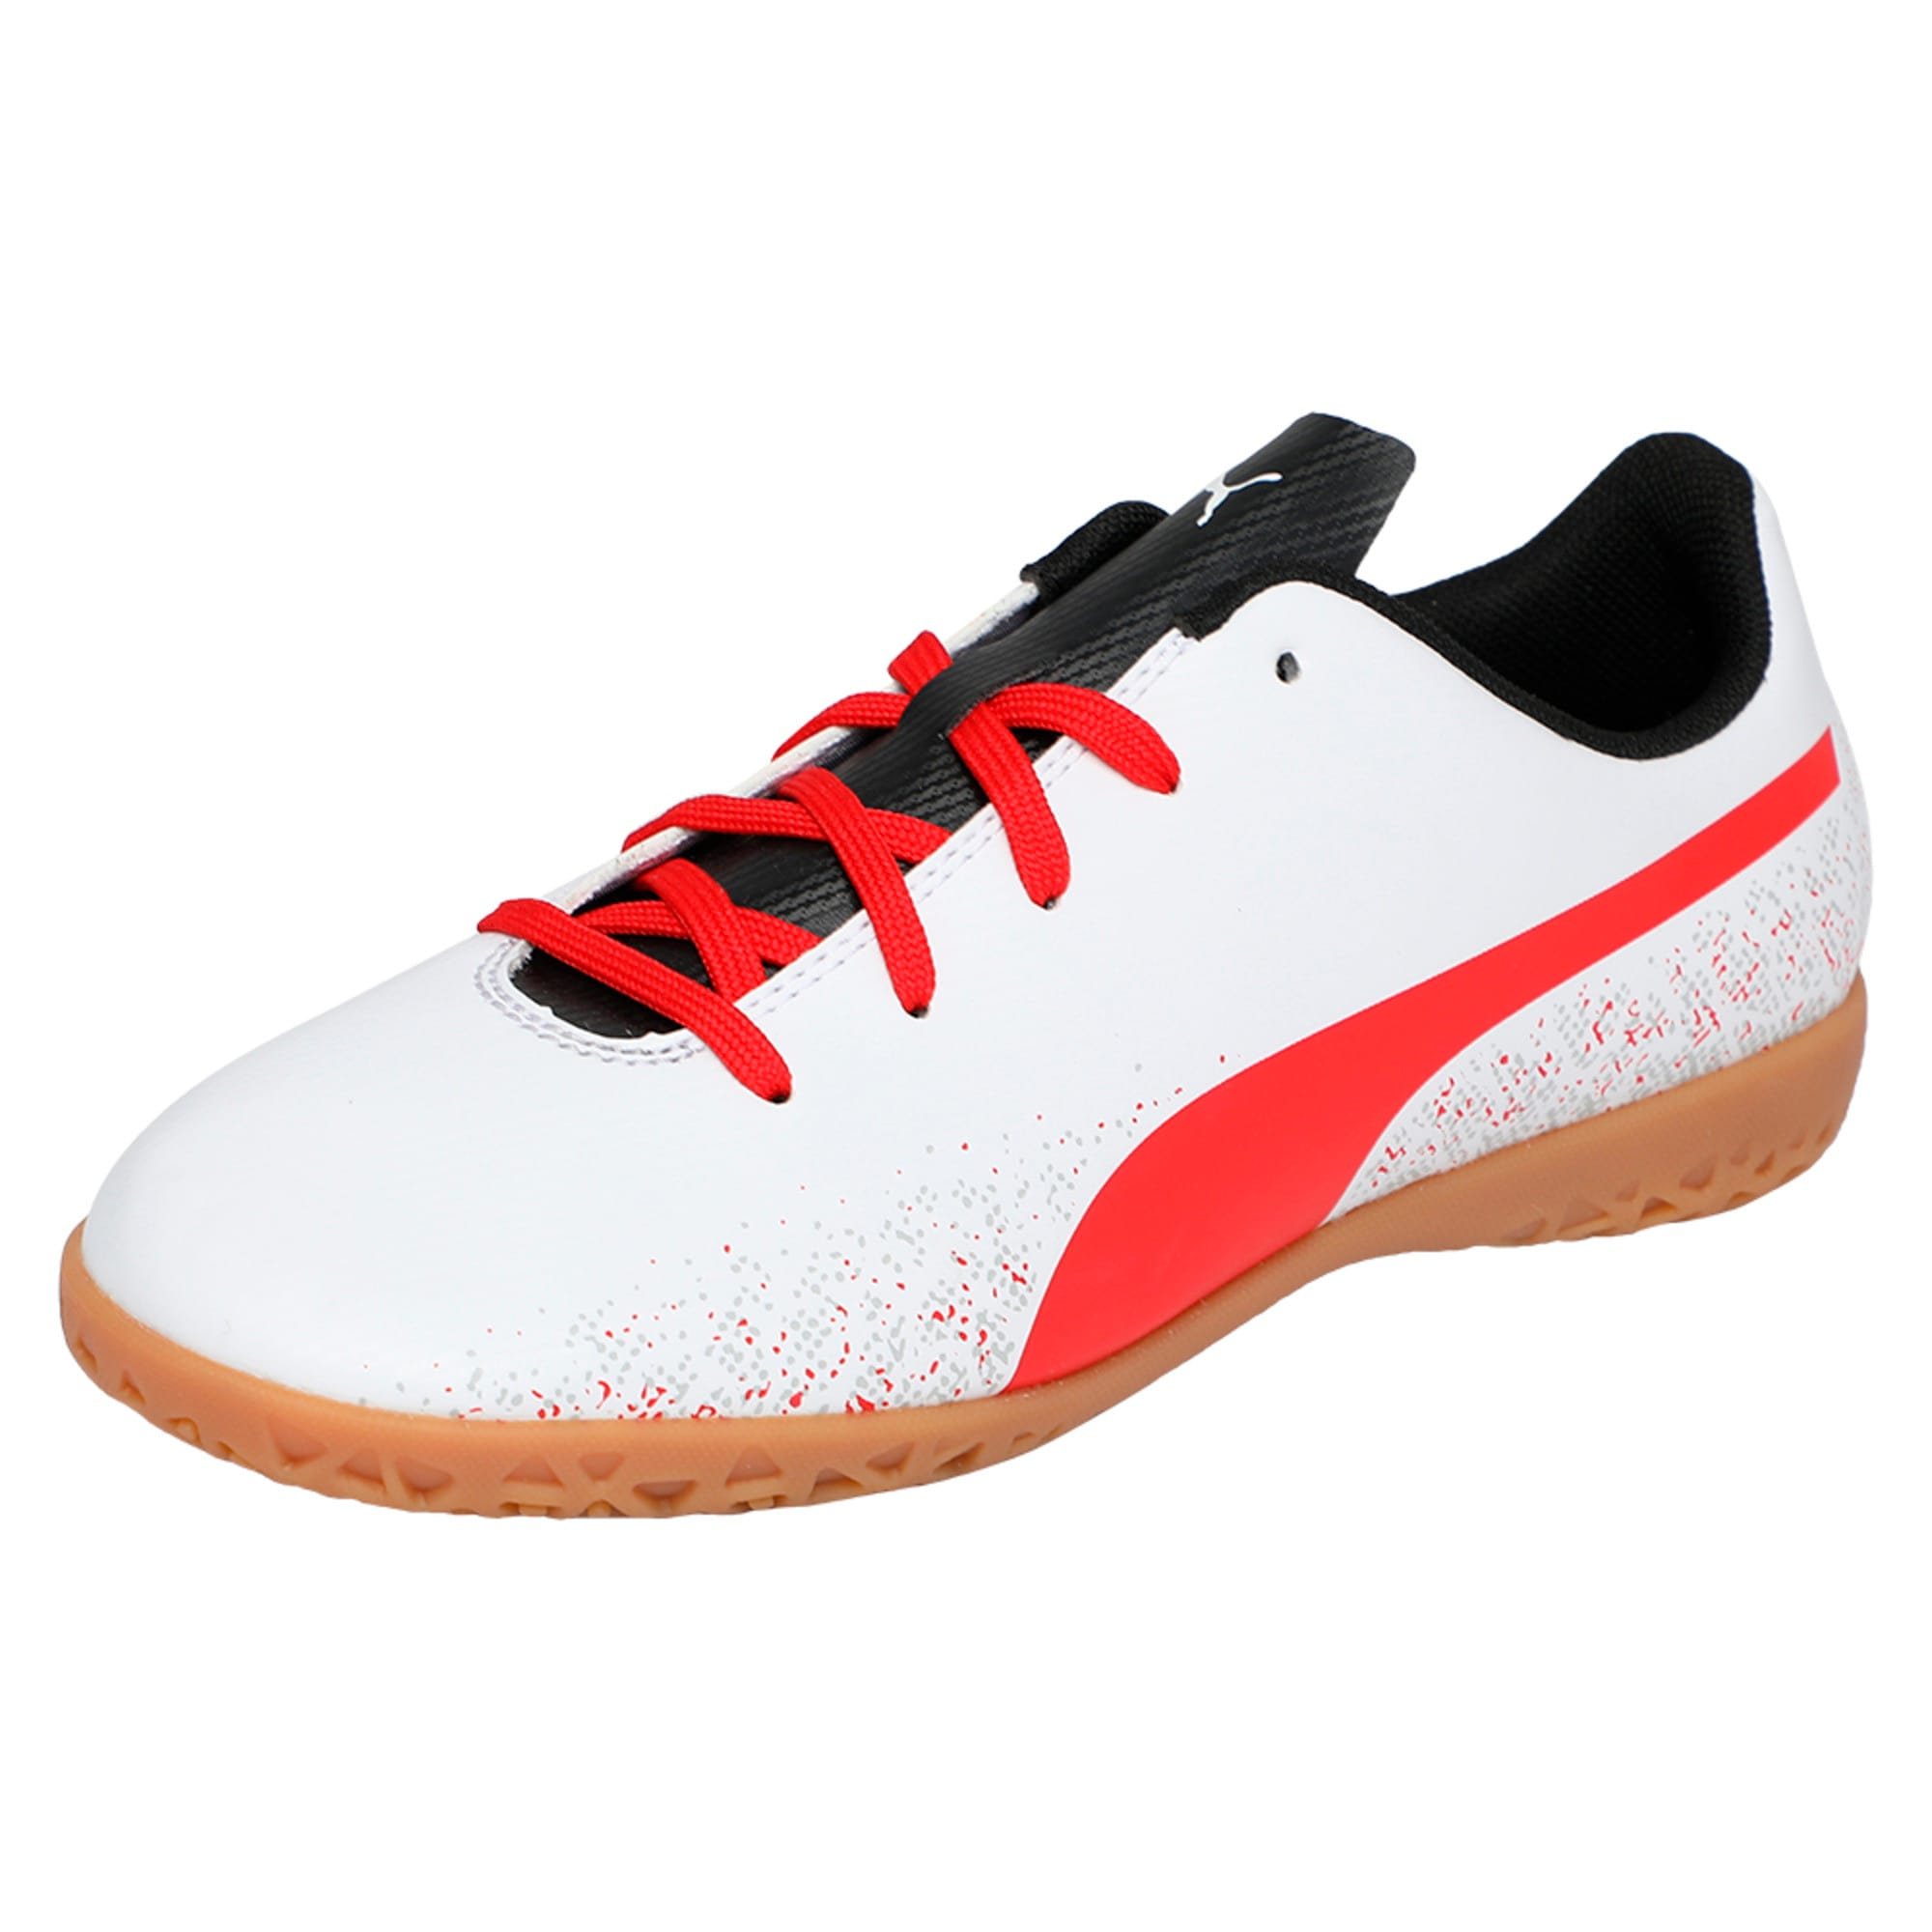 Thumbnail 1 of Truora IT Kids' Indoor Training Shoes, White-Flame Scarlet-Black, medium-IND